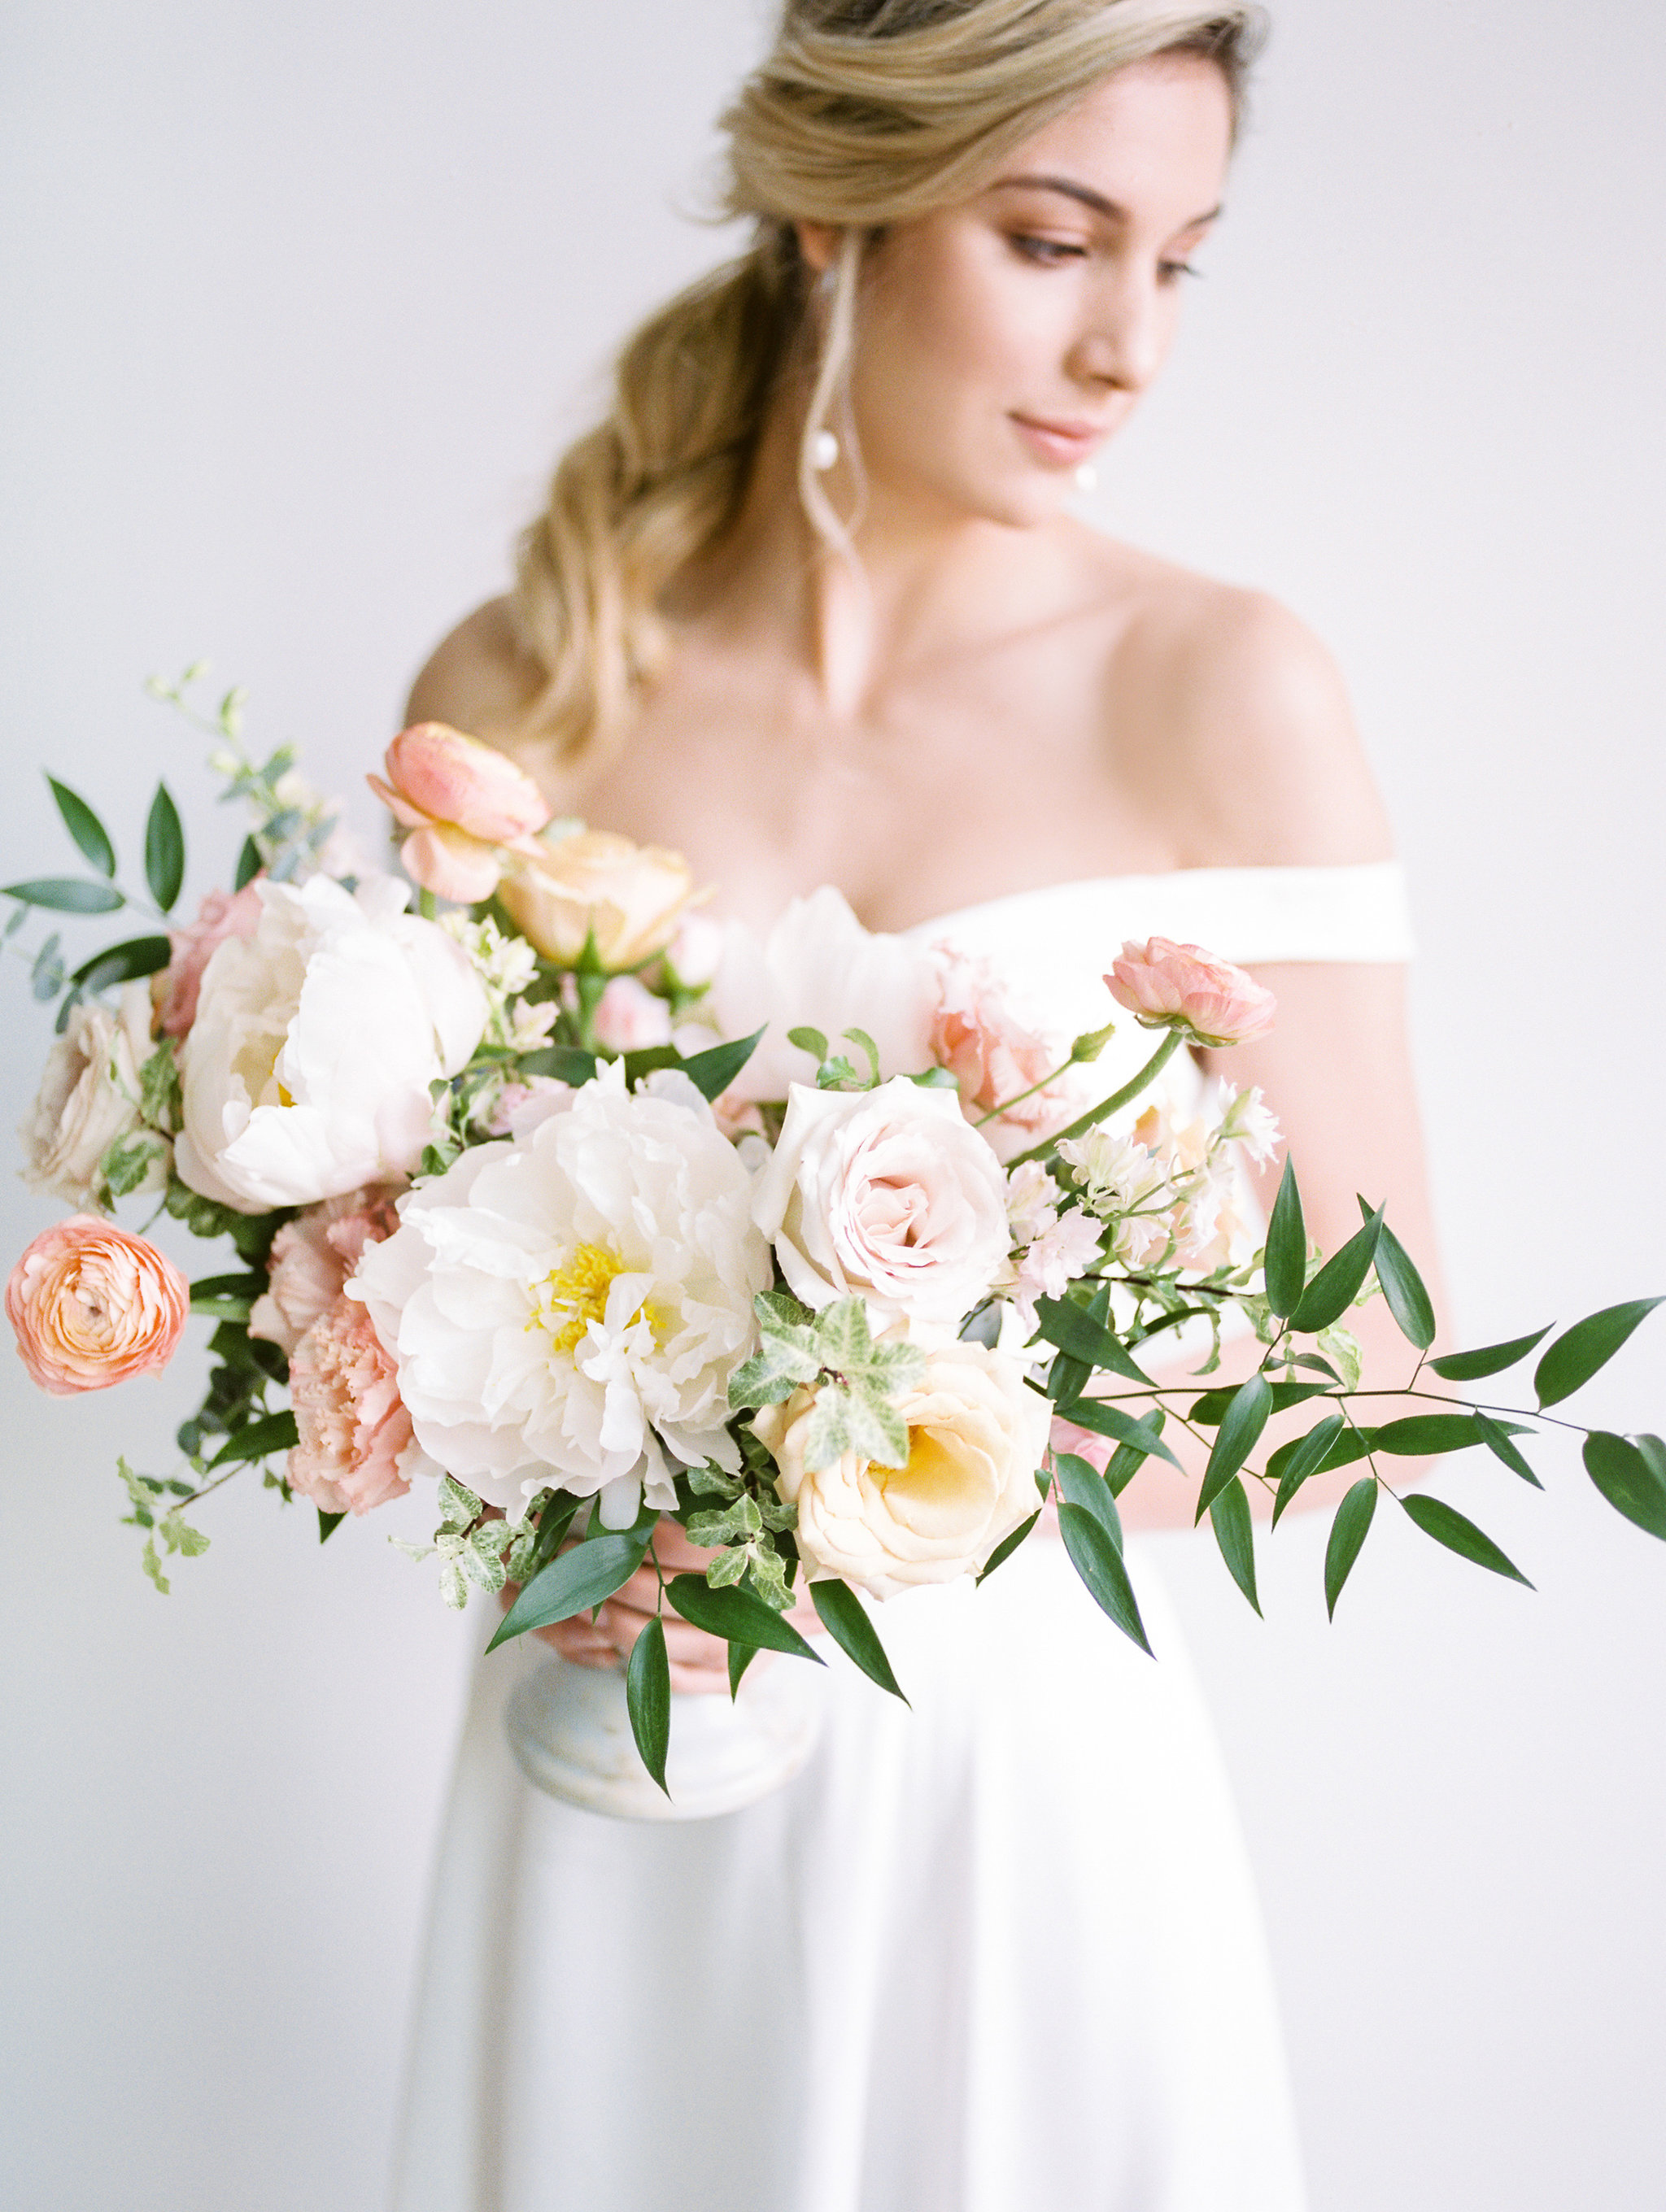 This Stunning Shoot Combines Fine Art Inspiration and Colourful Florals in the Most Beautiful Way - on the Bronte Bride Blog